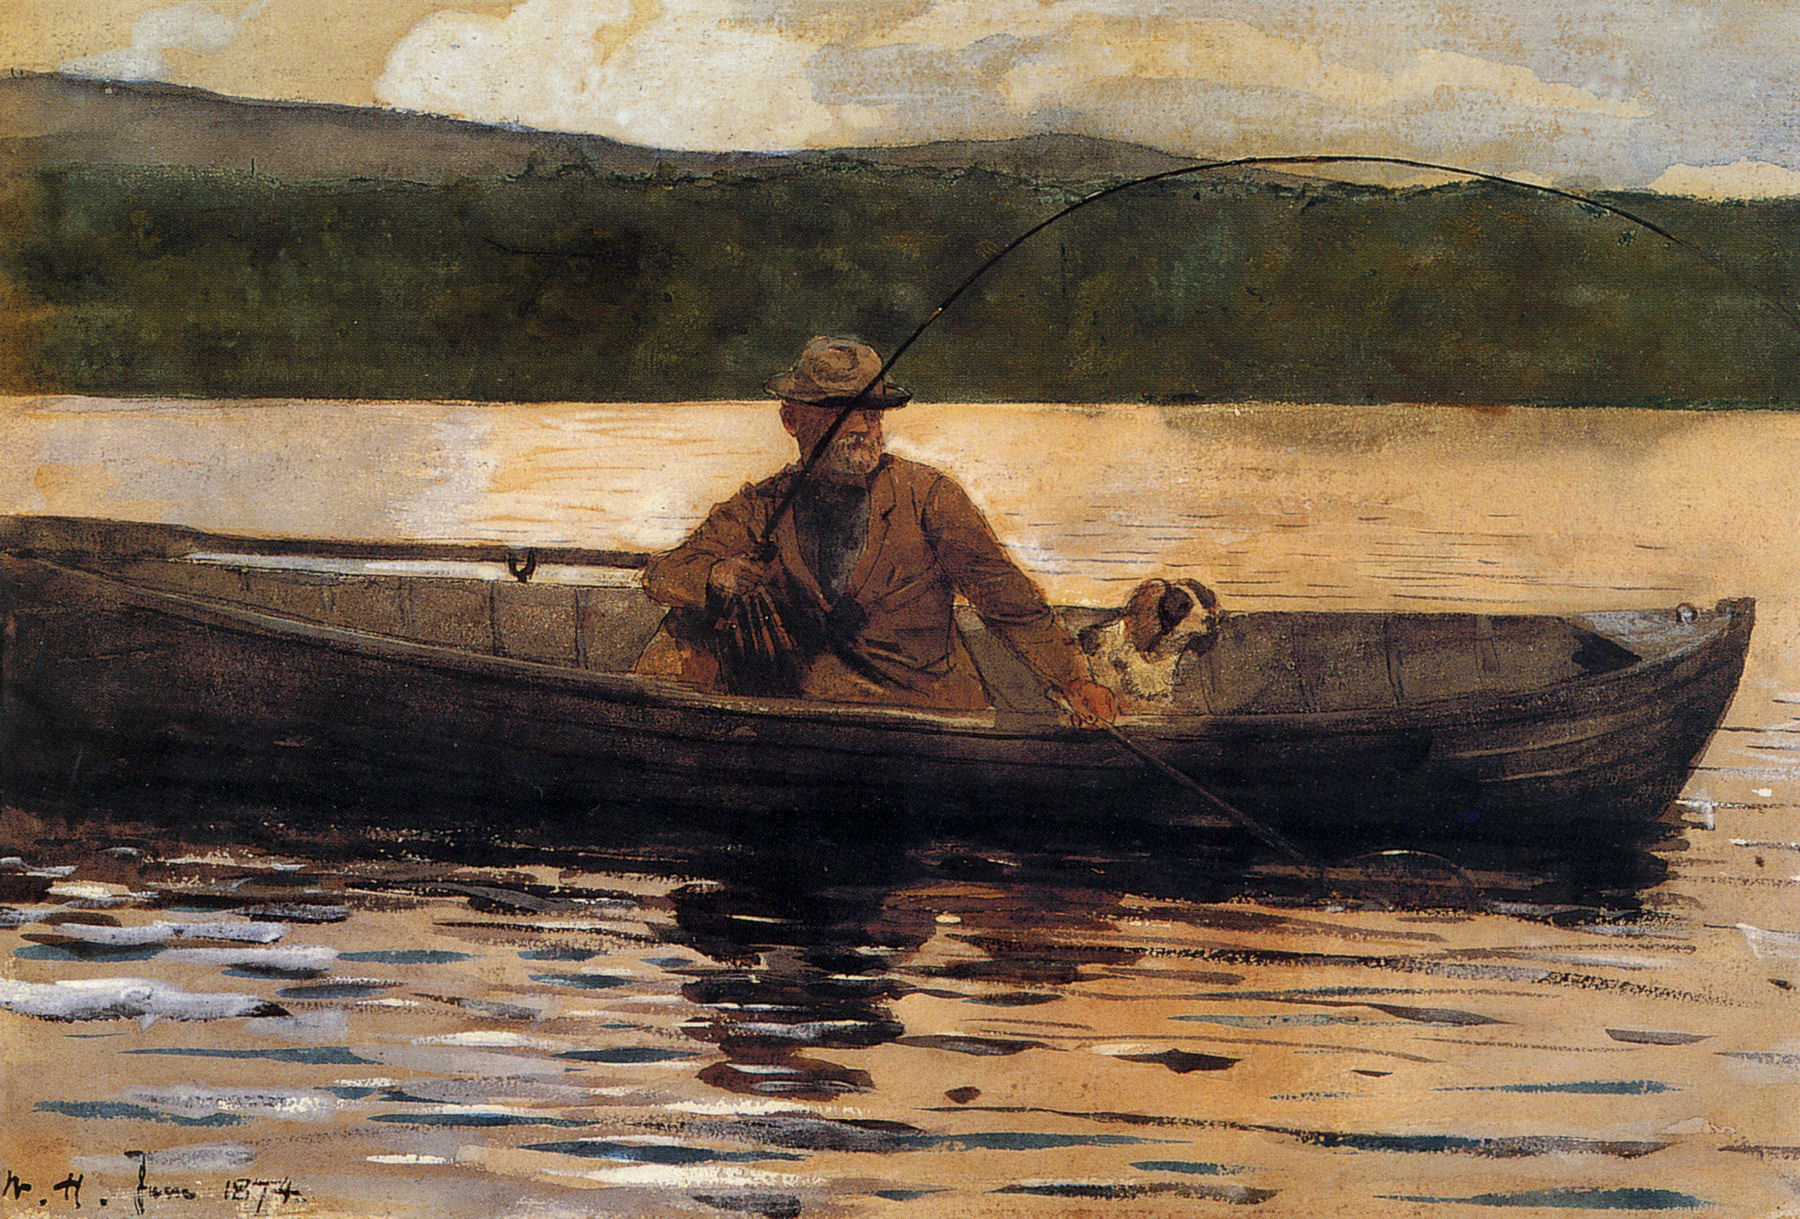 Omaž ribolovcu i ribolovu - Page 8 Winslow_Homer_-_The_painter_Eliphalet_Terry_fishing_from_a_boat_(1874)